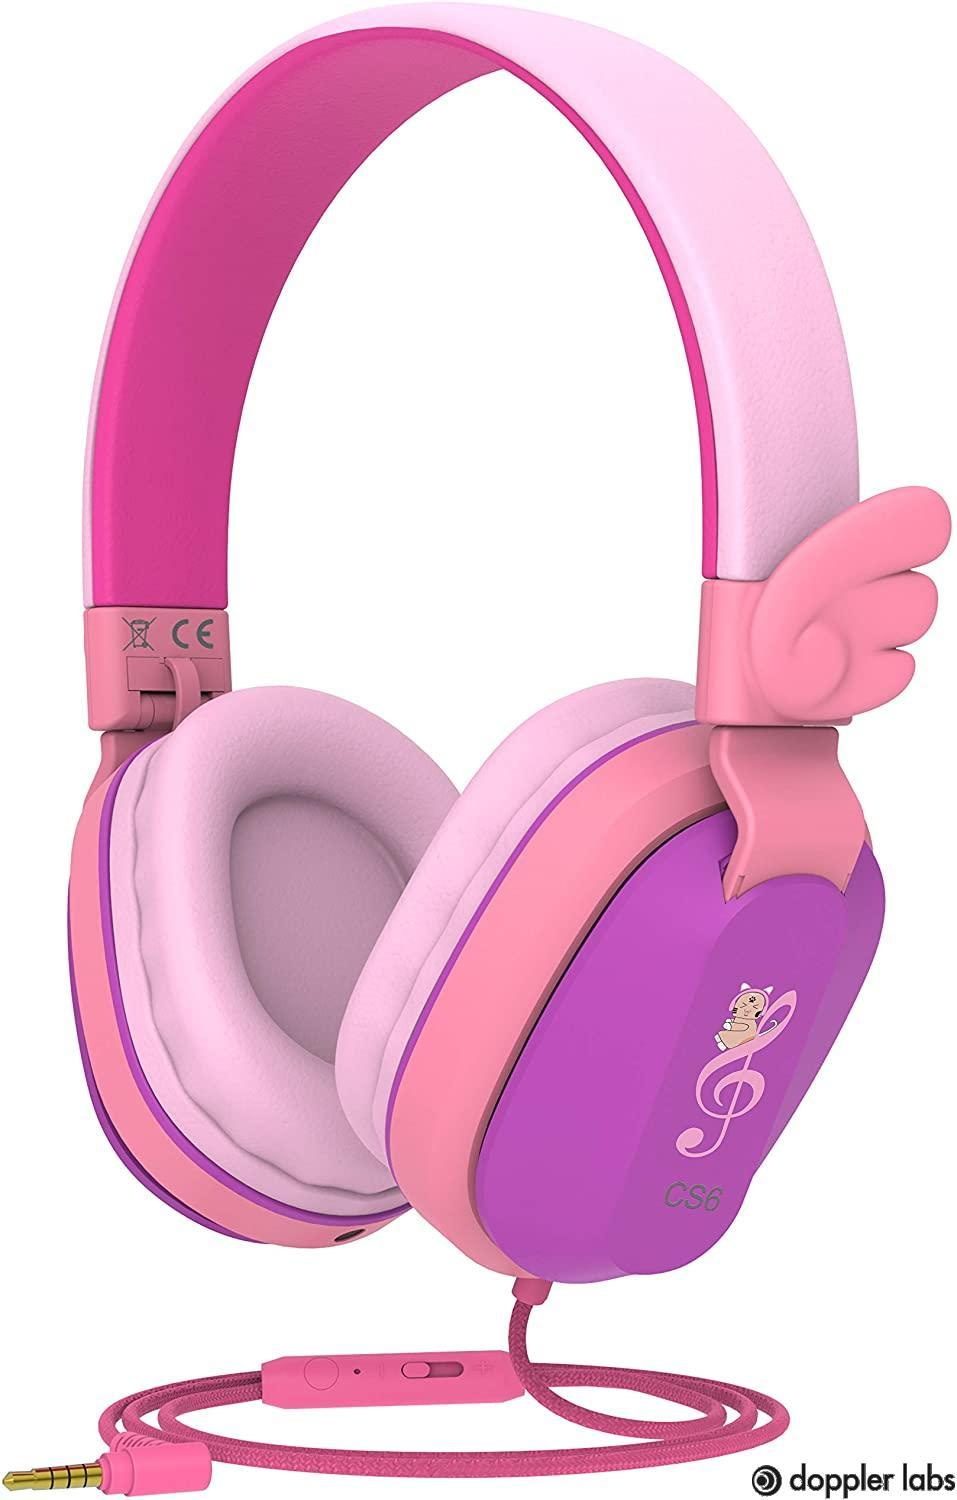 Riwbox CS6 Kids Headphones